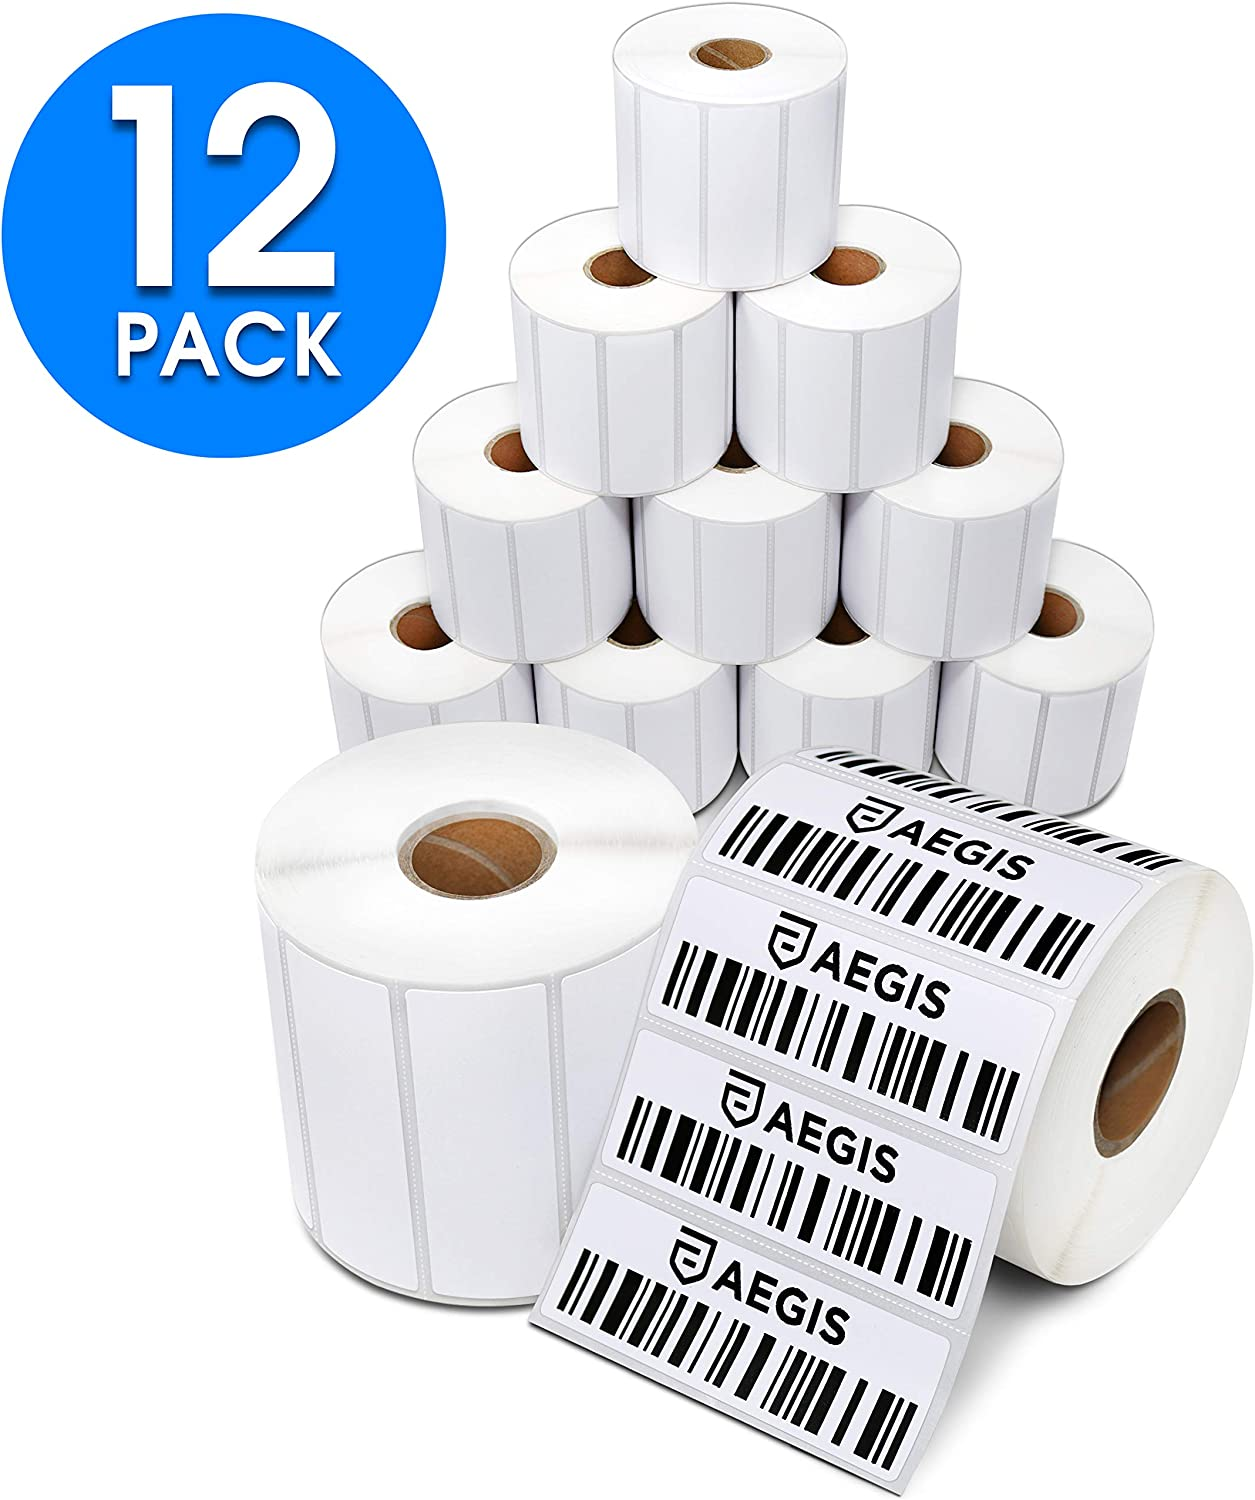 "Aegis Adhesives - 3"" X 1"" Direct Thermal Labels for FBA Barcodes, Address, Perforated & Compatible with Rollo Label Printer & Zebra Desktop Printers (12 Rolls, 1300/Roll)"